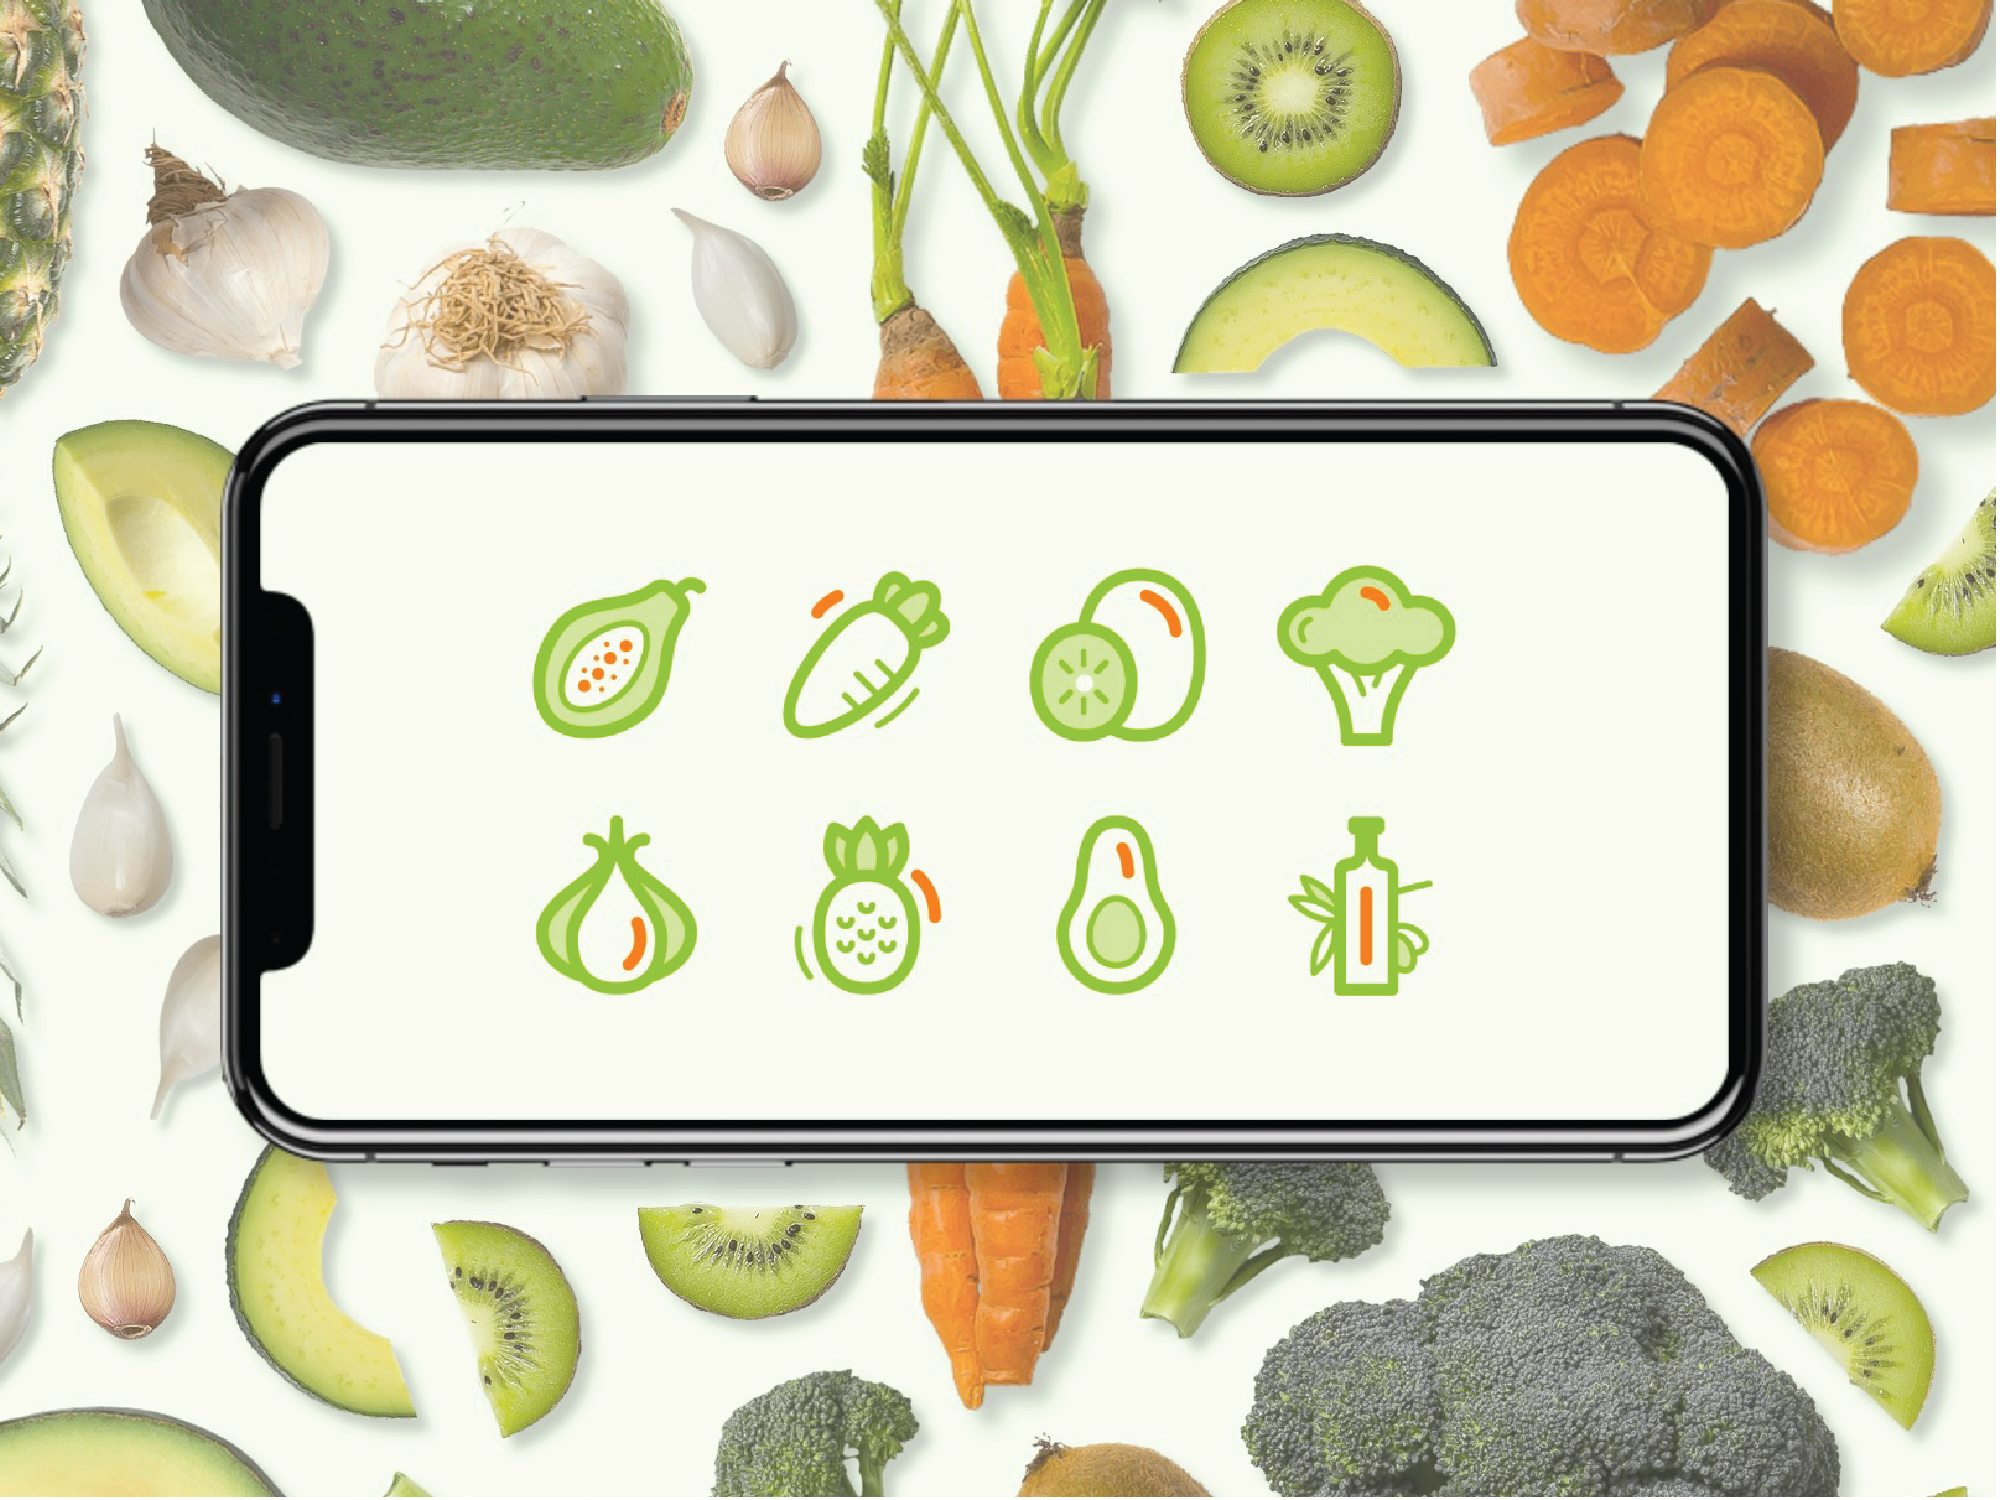 Clean vector illustrated superfood icons displayed on a mobile device and surrounded with superfoods.